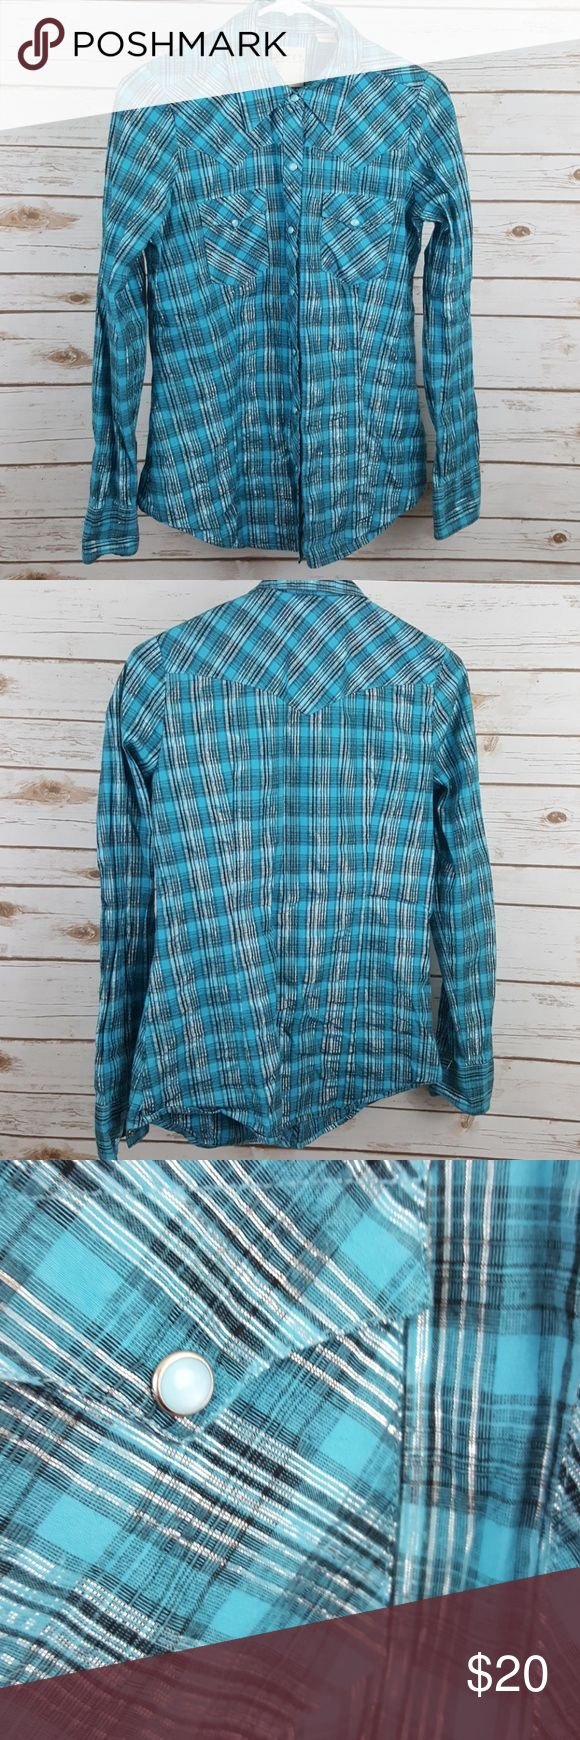 Roper pearl snap cowgirl shirt Roper pearl snap long sleeve cowgirl shirt. Excellent condition size small Roper Tops